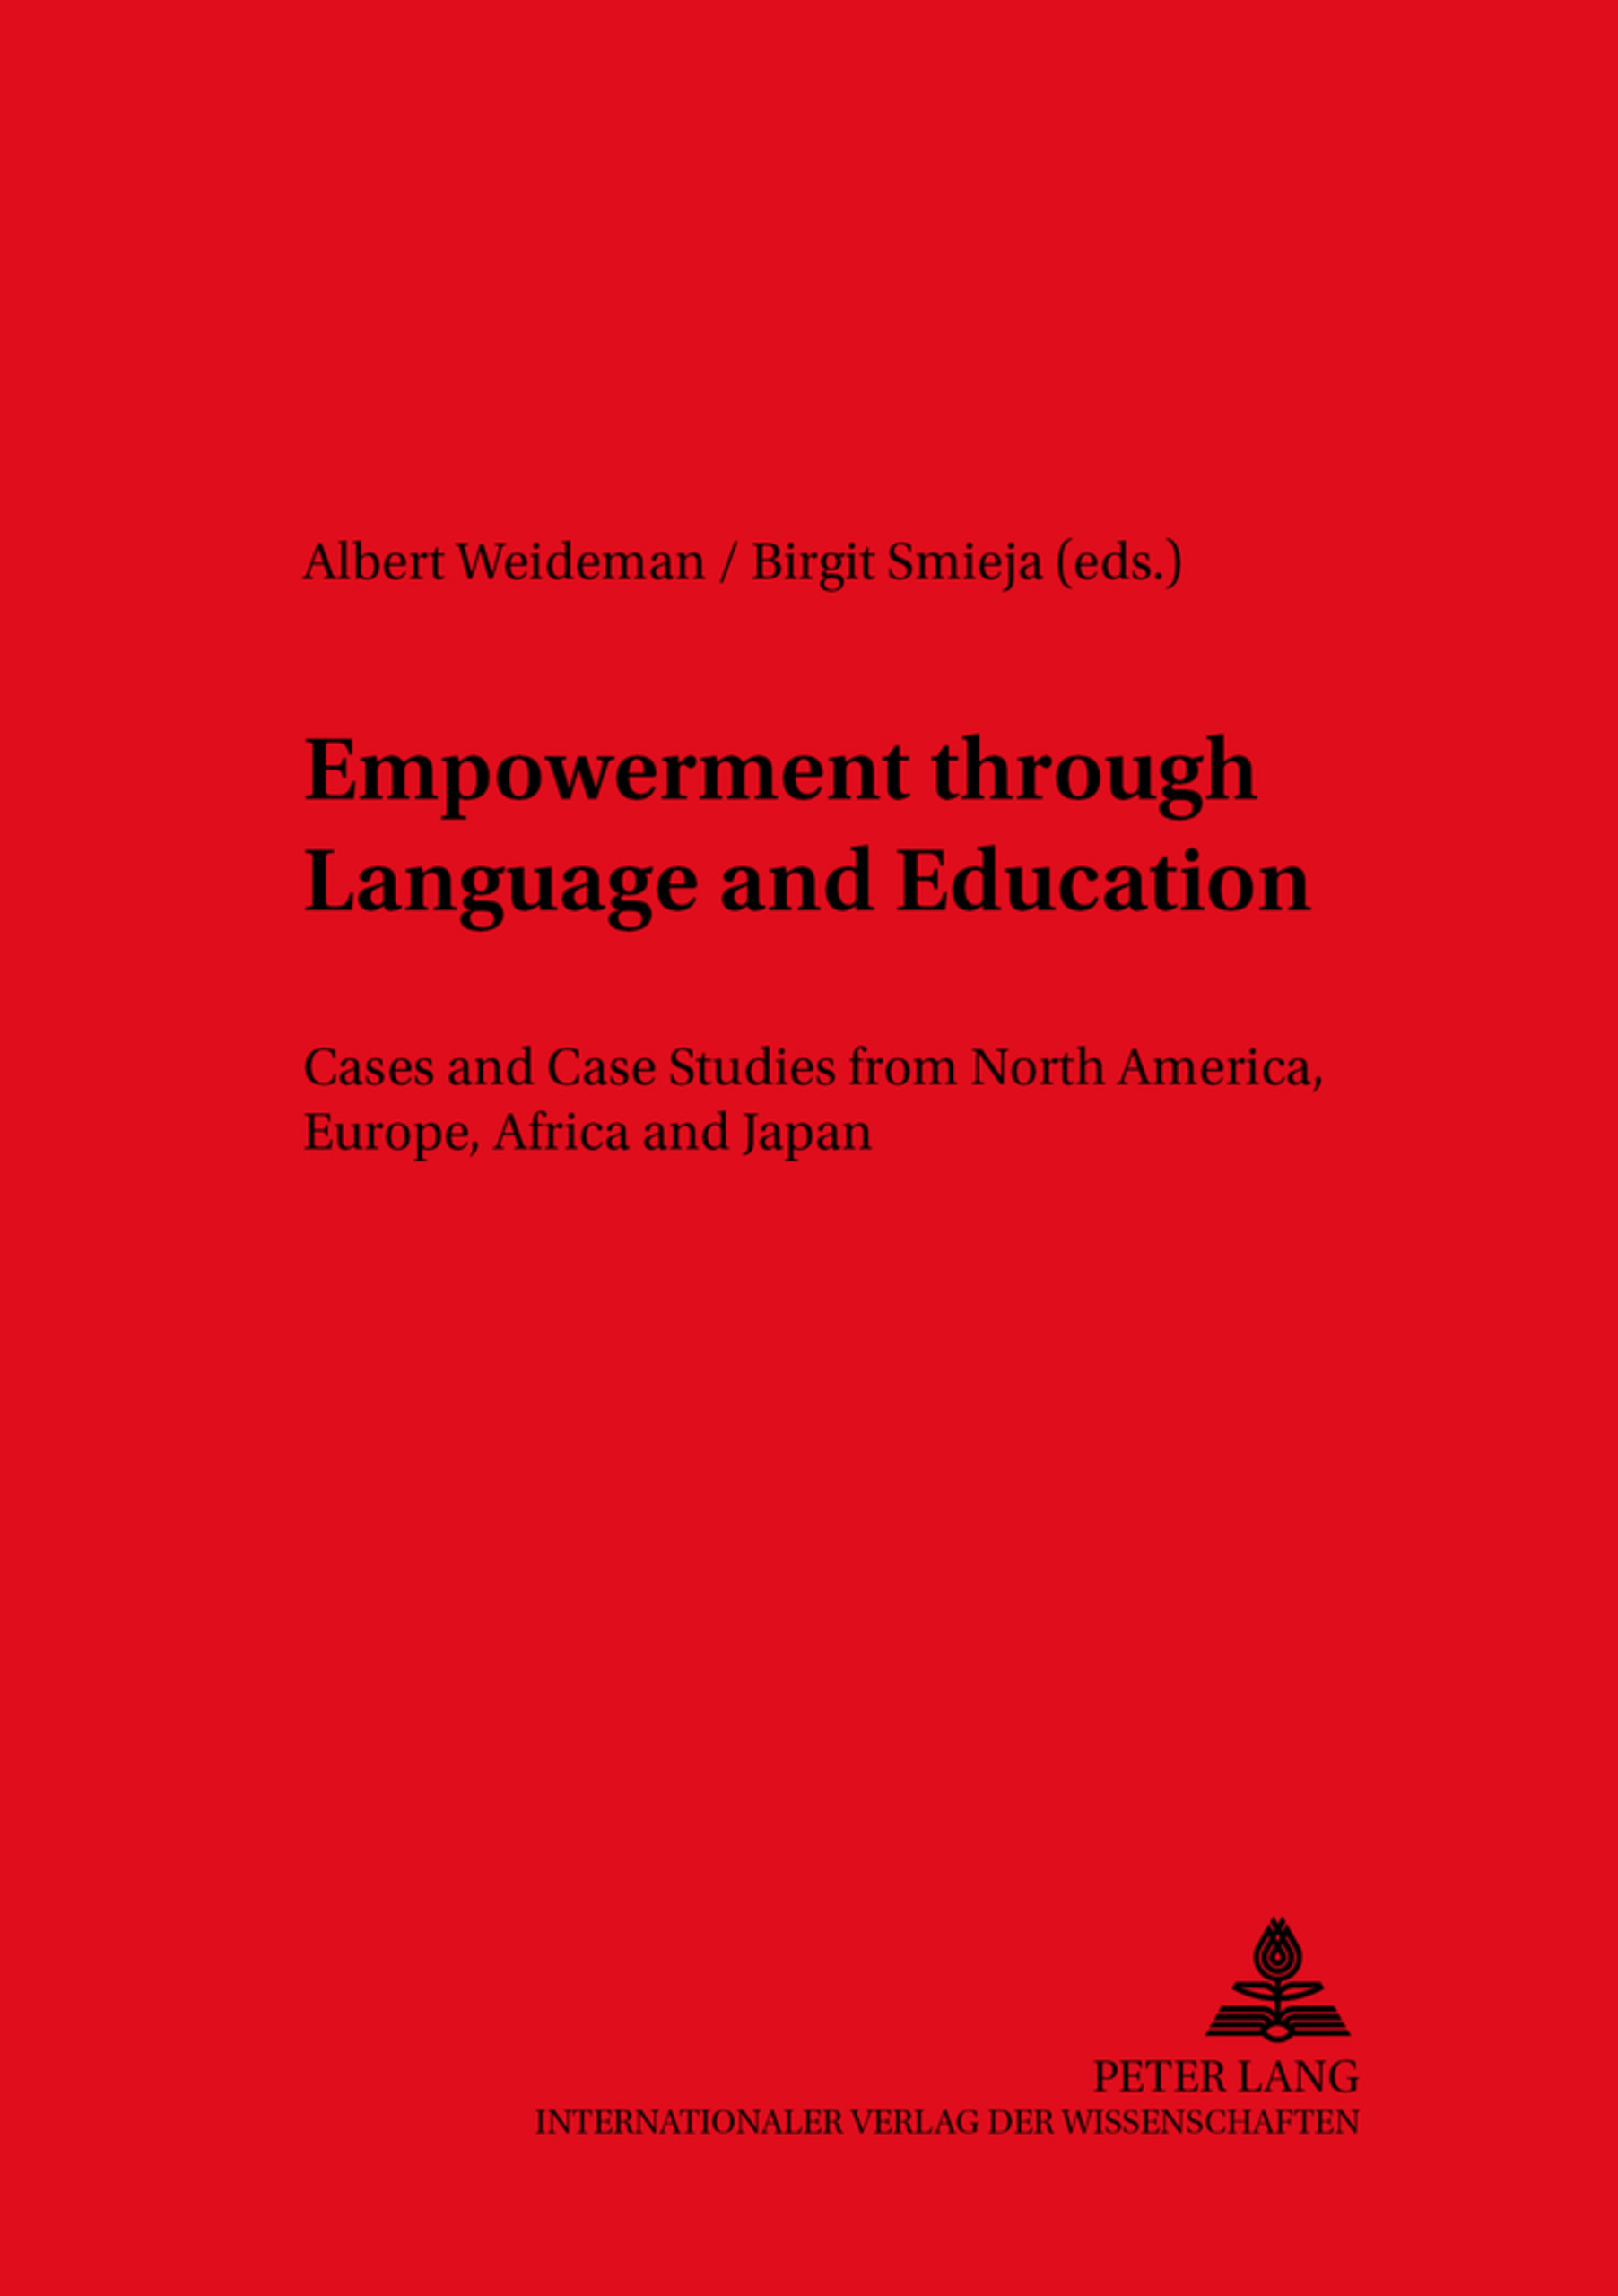 Title: Empowerment through Language and Education